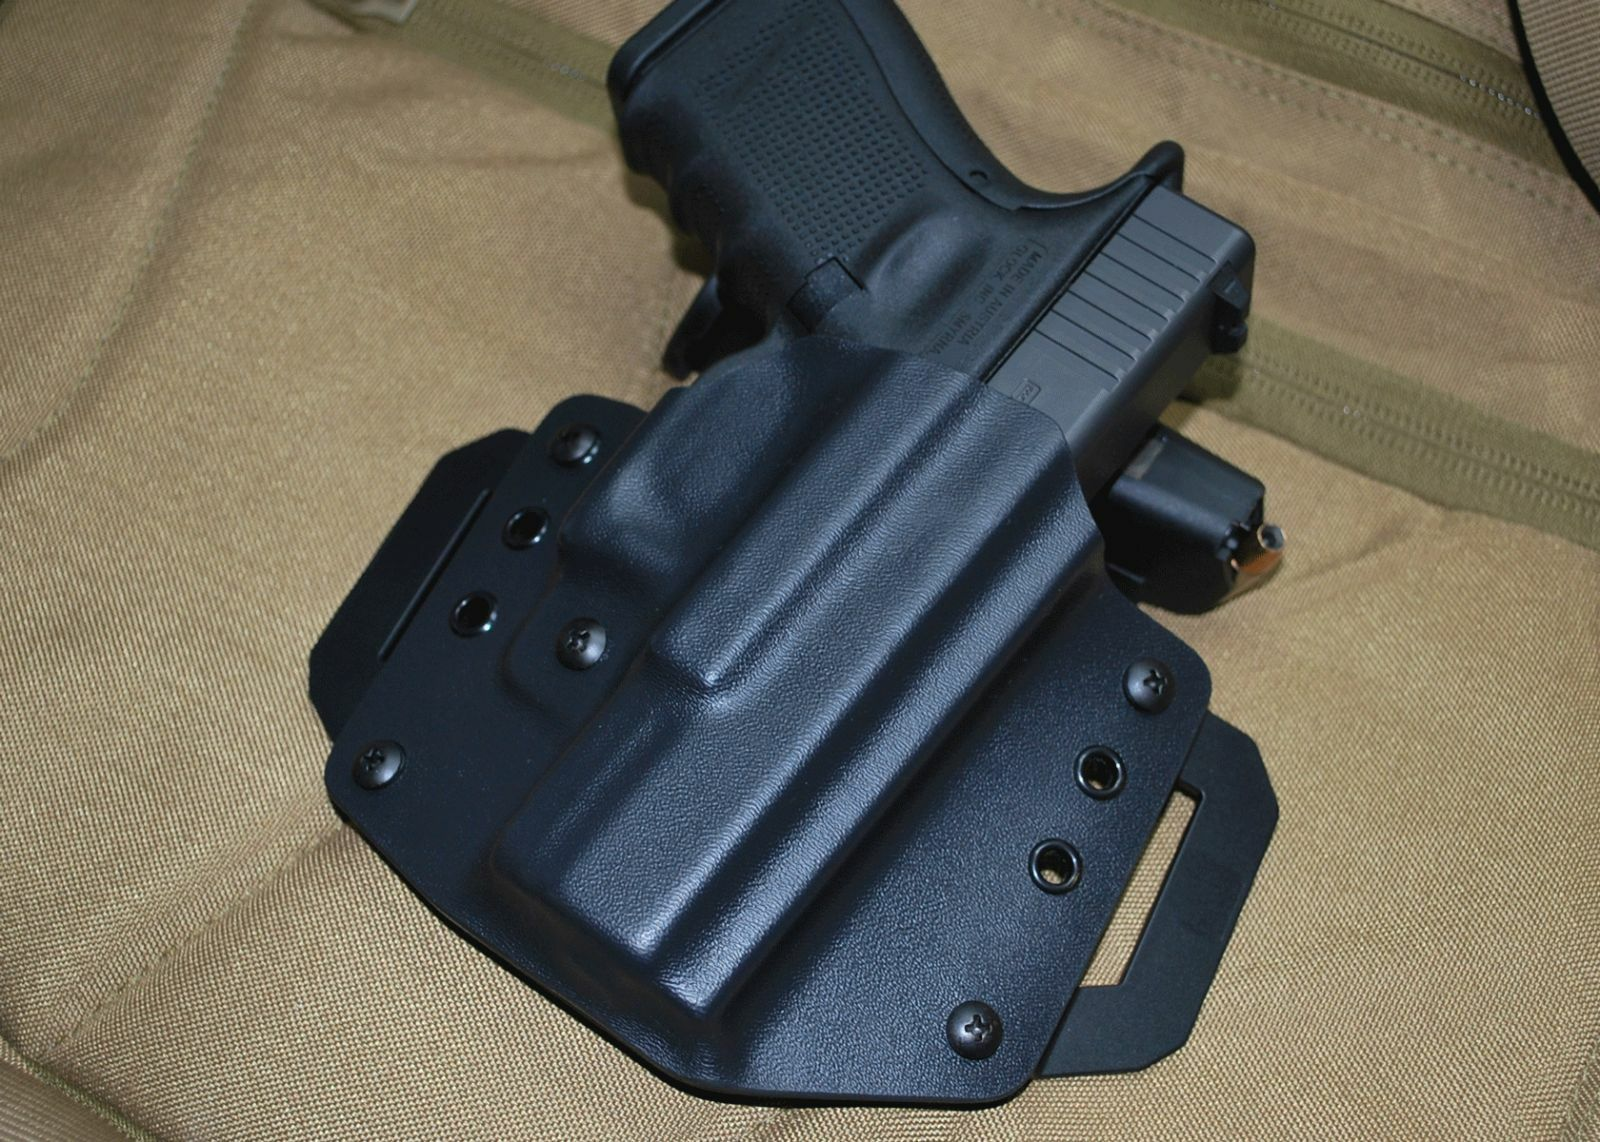 The Curve OWB Kydex Holster for SCCY 9mm pistol by 1441 Gear